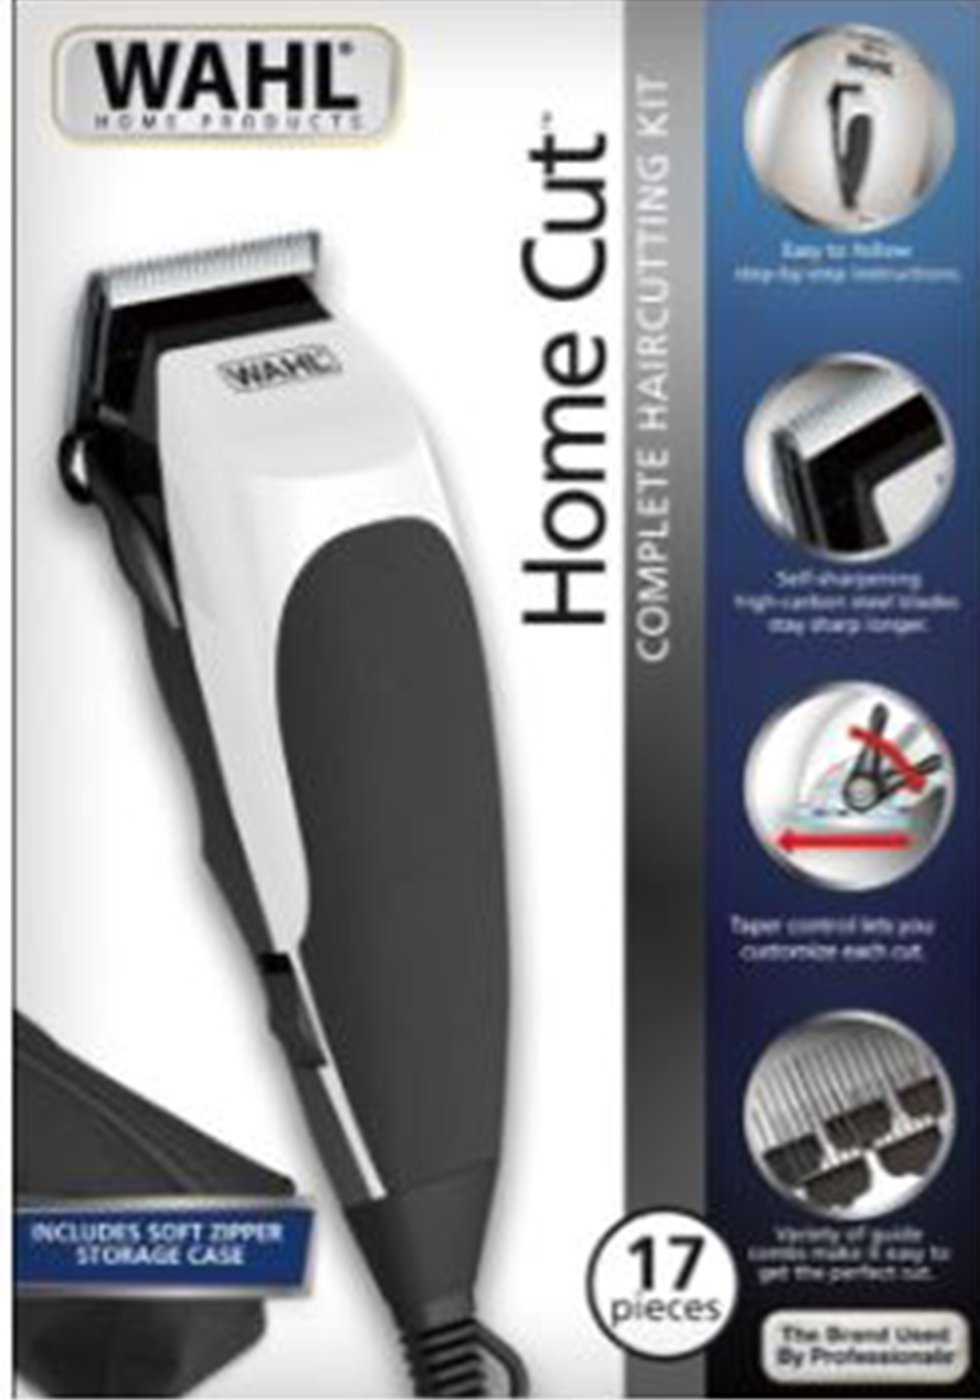 Buy Wahl Clipper 9633 502 Complete Hair Cutting Kit 10 Pc